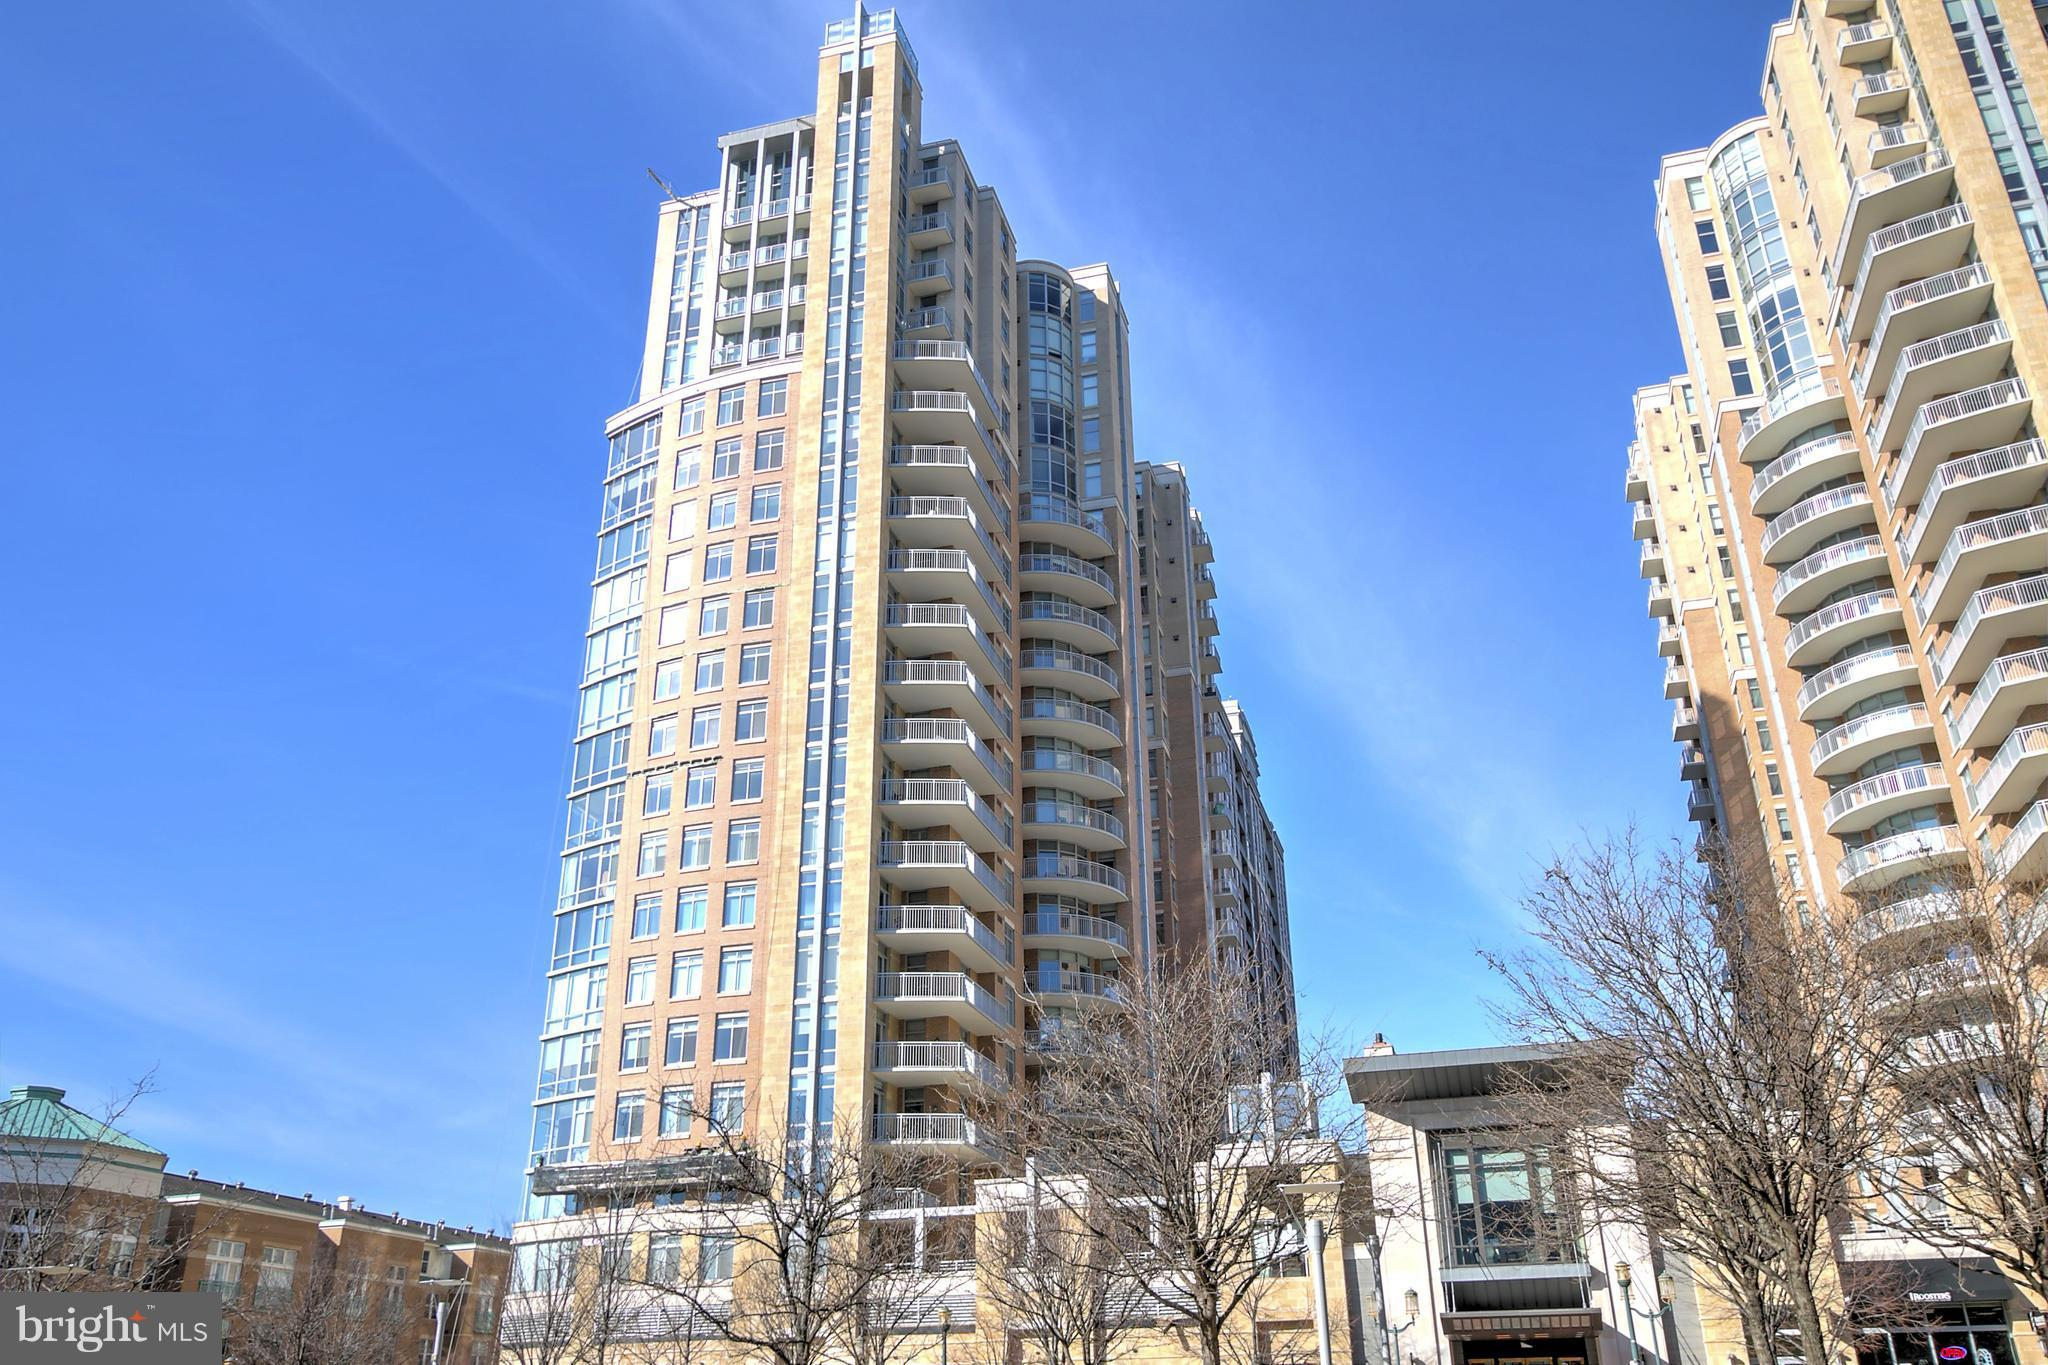 Come see this amazing Penthouse in the West Tower of Midtown! 2 BR+Den and 3 full baths! Over 2000 square feet!  Amazing 18th floor views from large balcony! Original owners have lived here just a month or two each year - it looks like new! Only 5 homes on the 18th floor. Extra tall ceilings! 2 side by side garage spaces by the elevator! Amenity-rich building with movie theater and valet  parking!